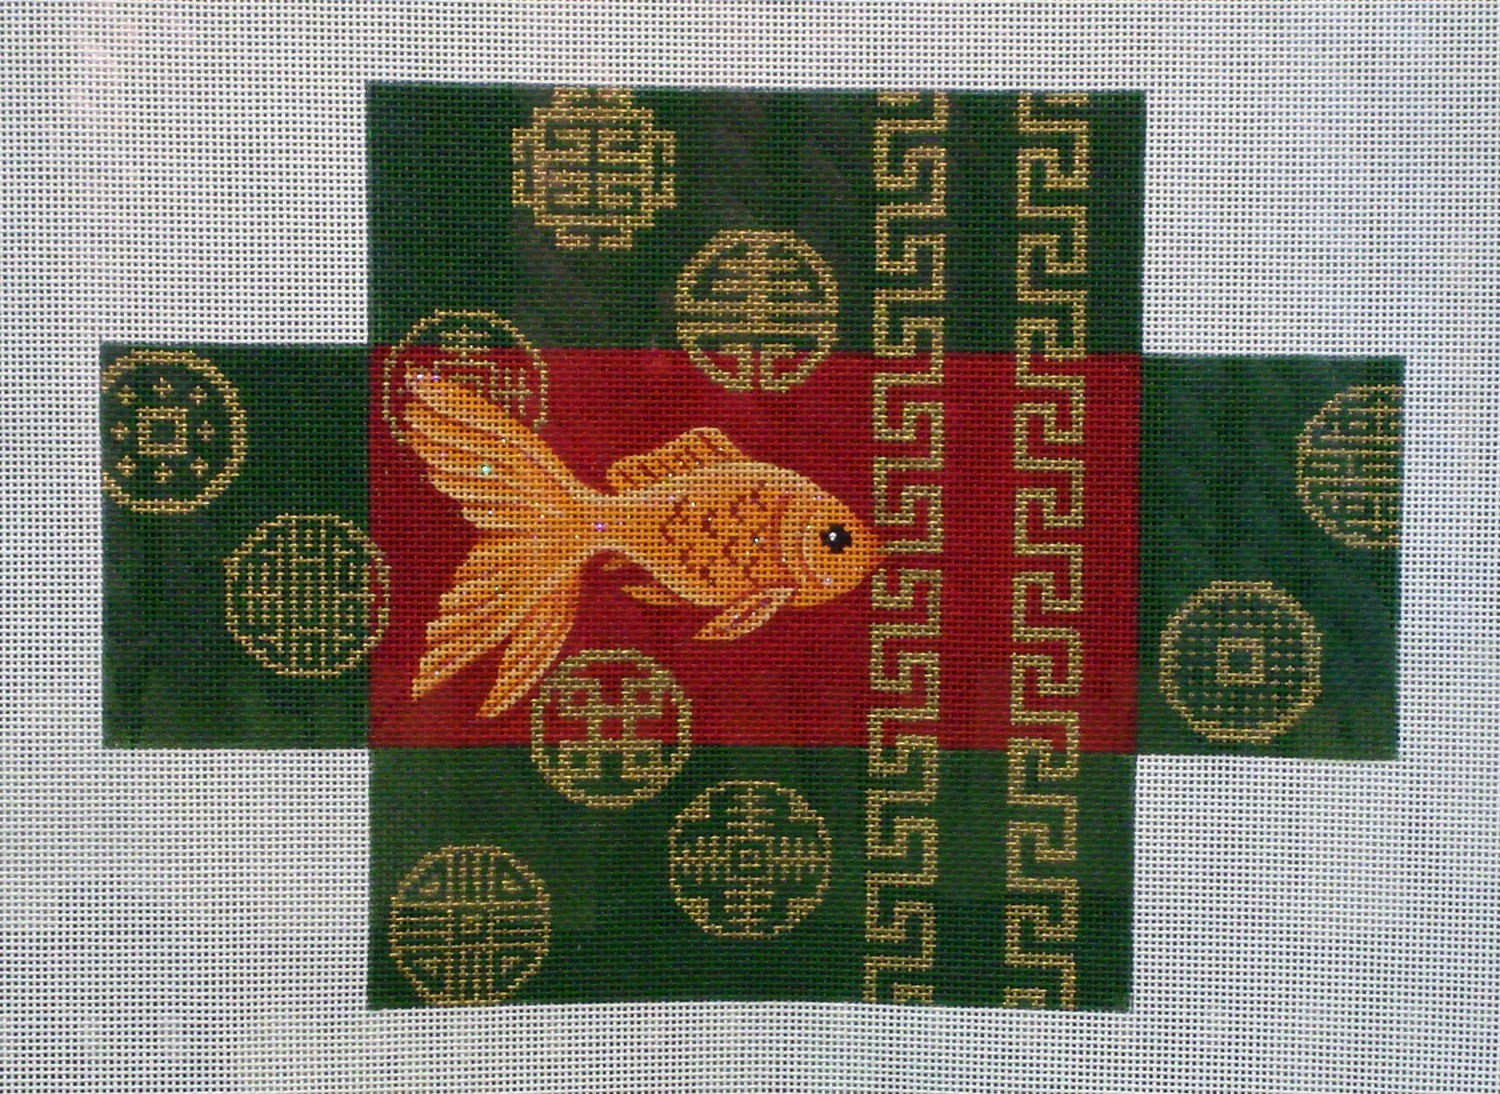 Goldfish & Coins Brick Cover    (Handpainted by JP Needlepoint)